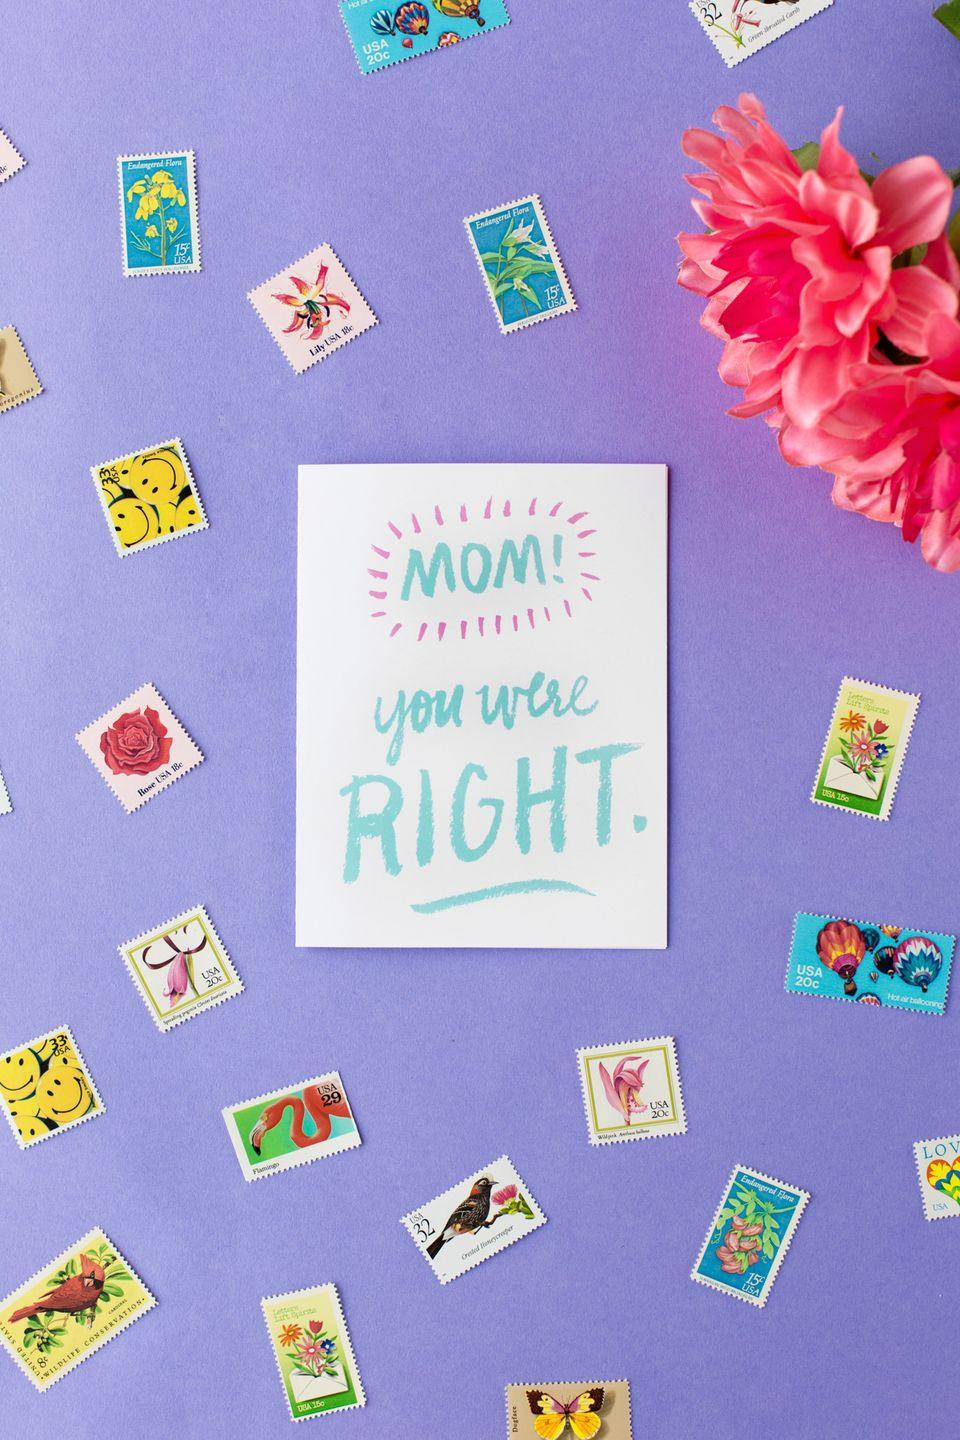 """<p>It's no secret that most mothers love to be told they're right—especially after many teenage years of hearing how wrong they were. As such, this simple card is sure to make an impact. </p><p><strong>Get the printable at <a href=""""https://studiodiy.com/free-printable-mothers-day-cards/"""" rel=""""nofollow noopener"""" target=""""_blank"""" data-ylk=""""slk:Studio DIY!"""" class=""""link rapid-noclick-resp"""">Studio DIY!</a></strong></p><p><a class=""""link rapid-noclick-resp"""" href=""""https://go.redirectingat.com?id=74968X1596630&url=https%3A%2F%2Fwww.walmart.com%2Fsearch%2F%3Fquery%3Dcard%2Bstock&sref=https%3A%2F%2Fwww.thepioneerwoman.com%2Fholidays-celebrations%2Fg35668391%2Fdiy-mothers-day-cards%2F"""" rel=""""nofollow noopener"""" target=""""_blank"""" data-ylk=""""slk:SHOP CARD STOCK"""">SHOP CARD STOCK</a></p>"""